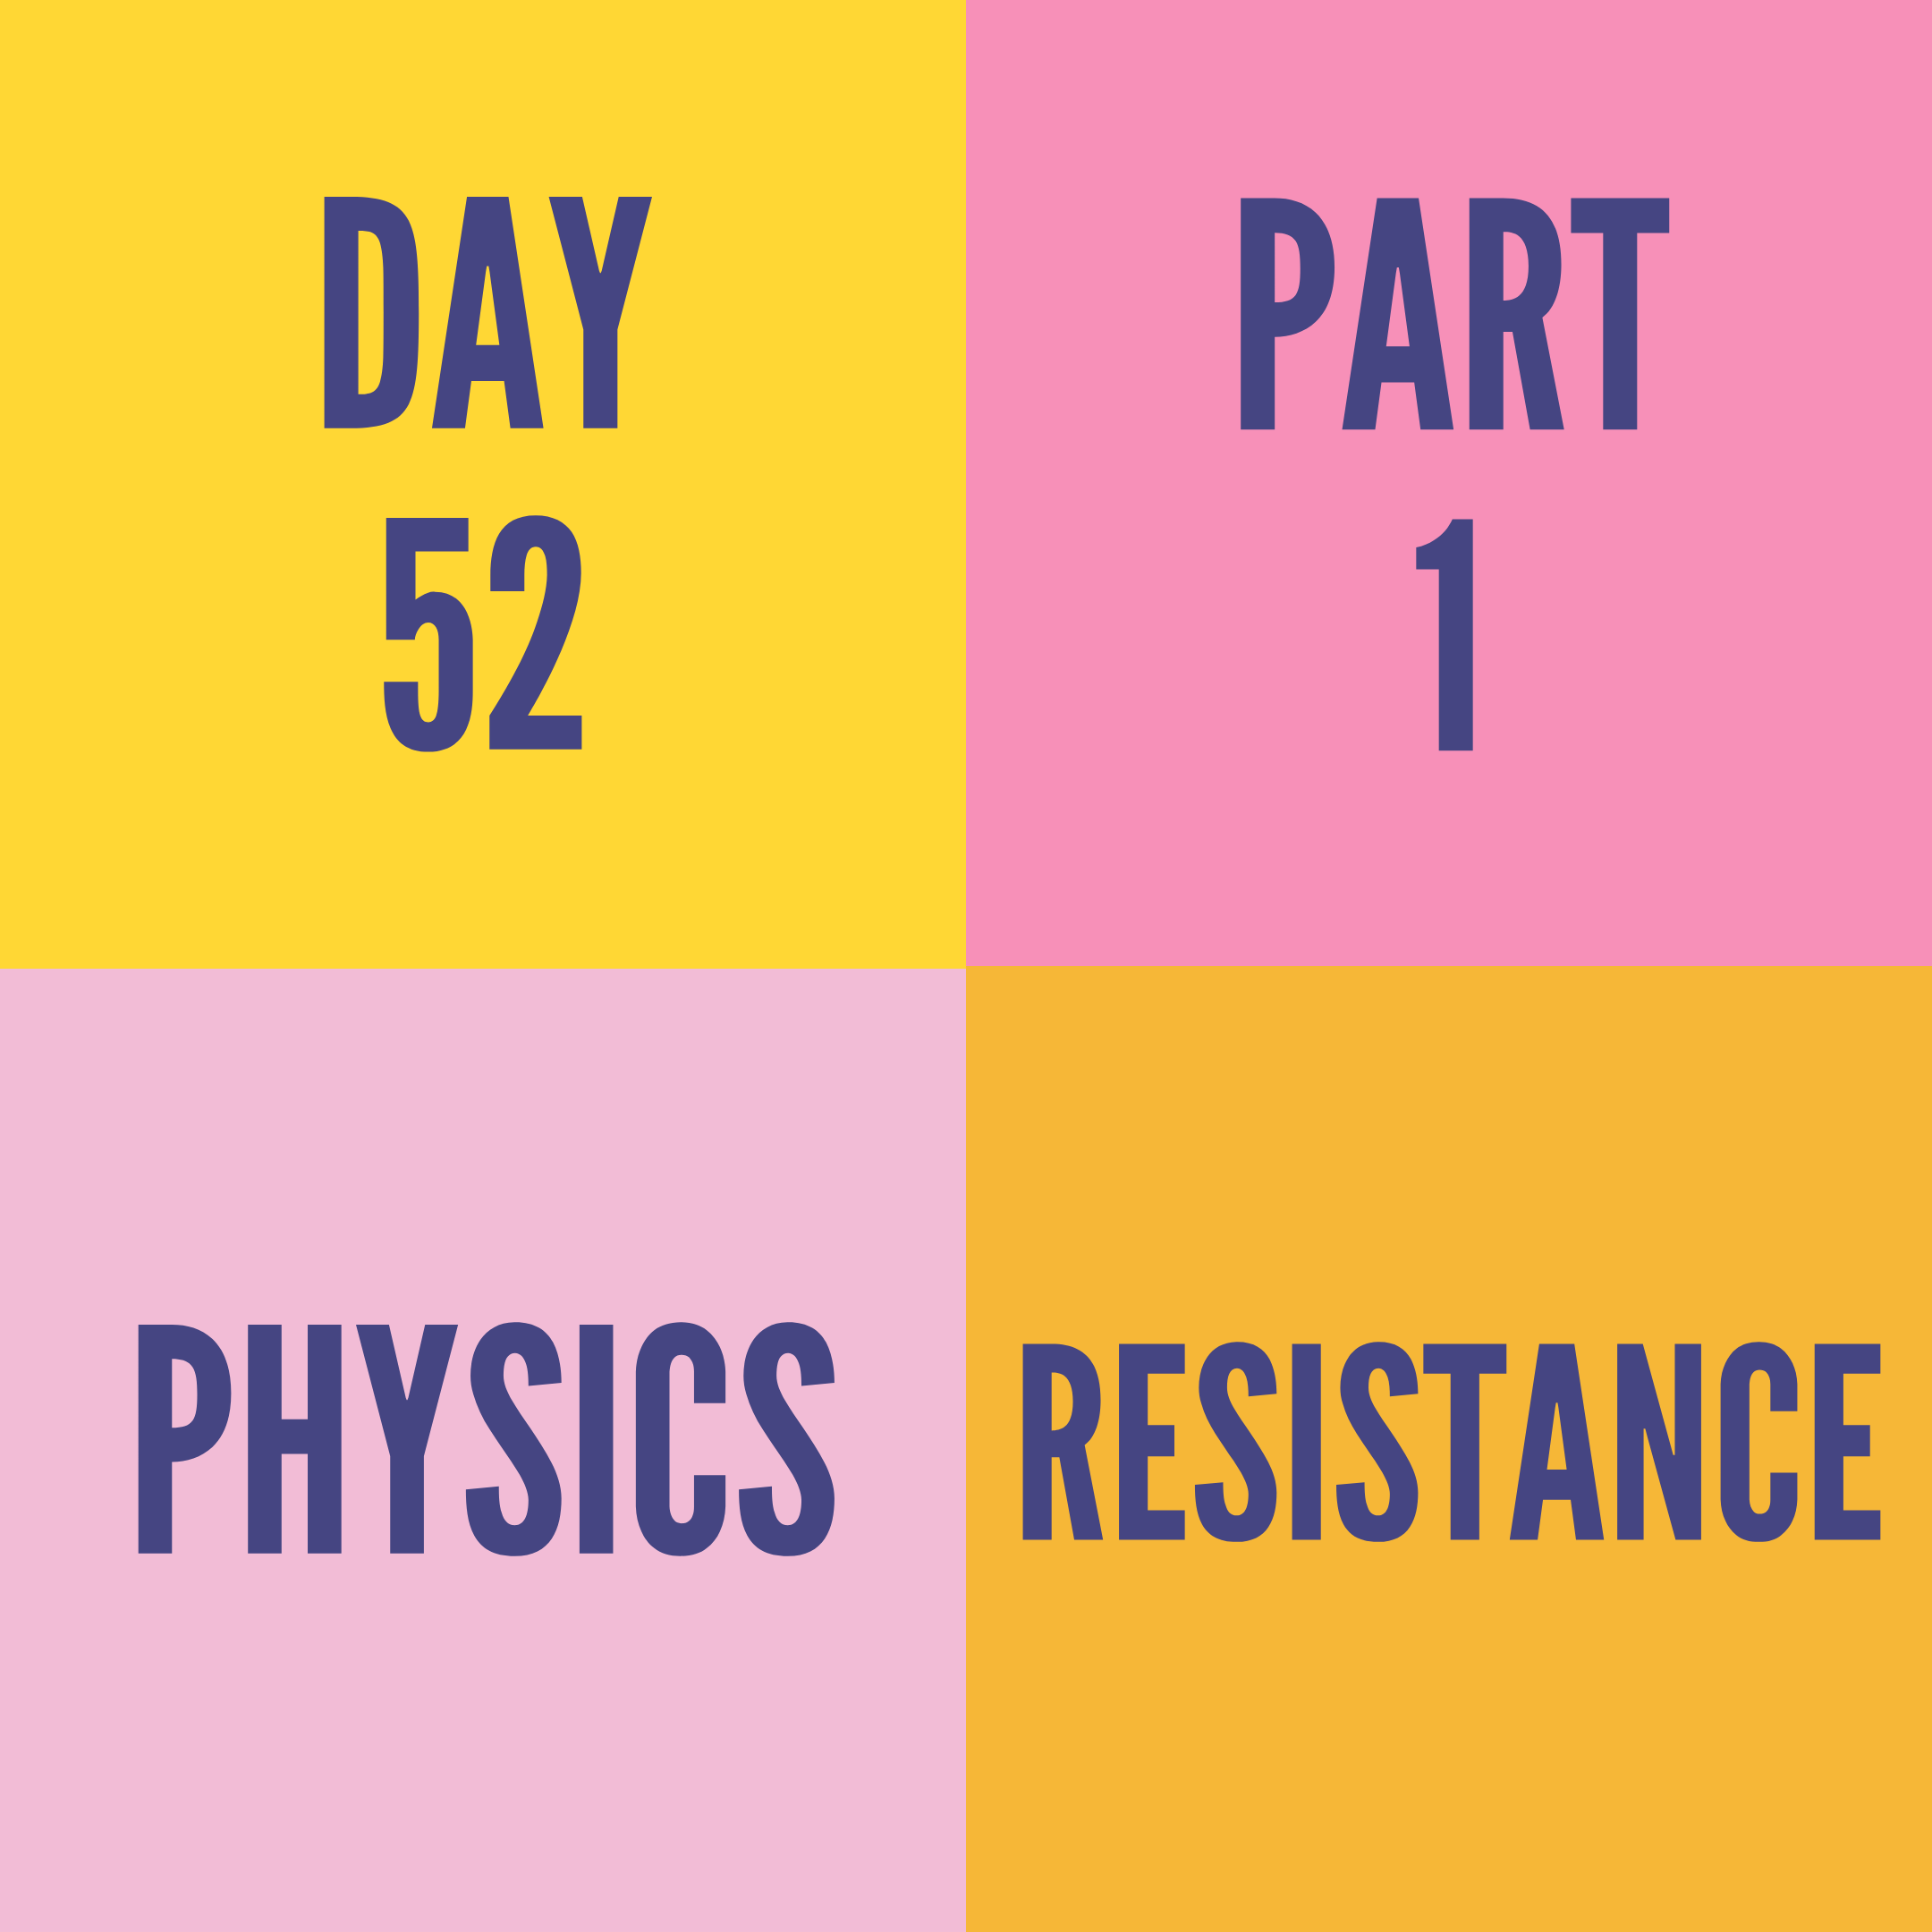 DAY-52 PART-1  RESISTANCE